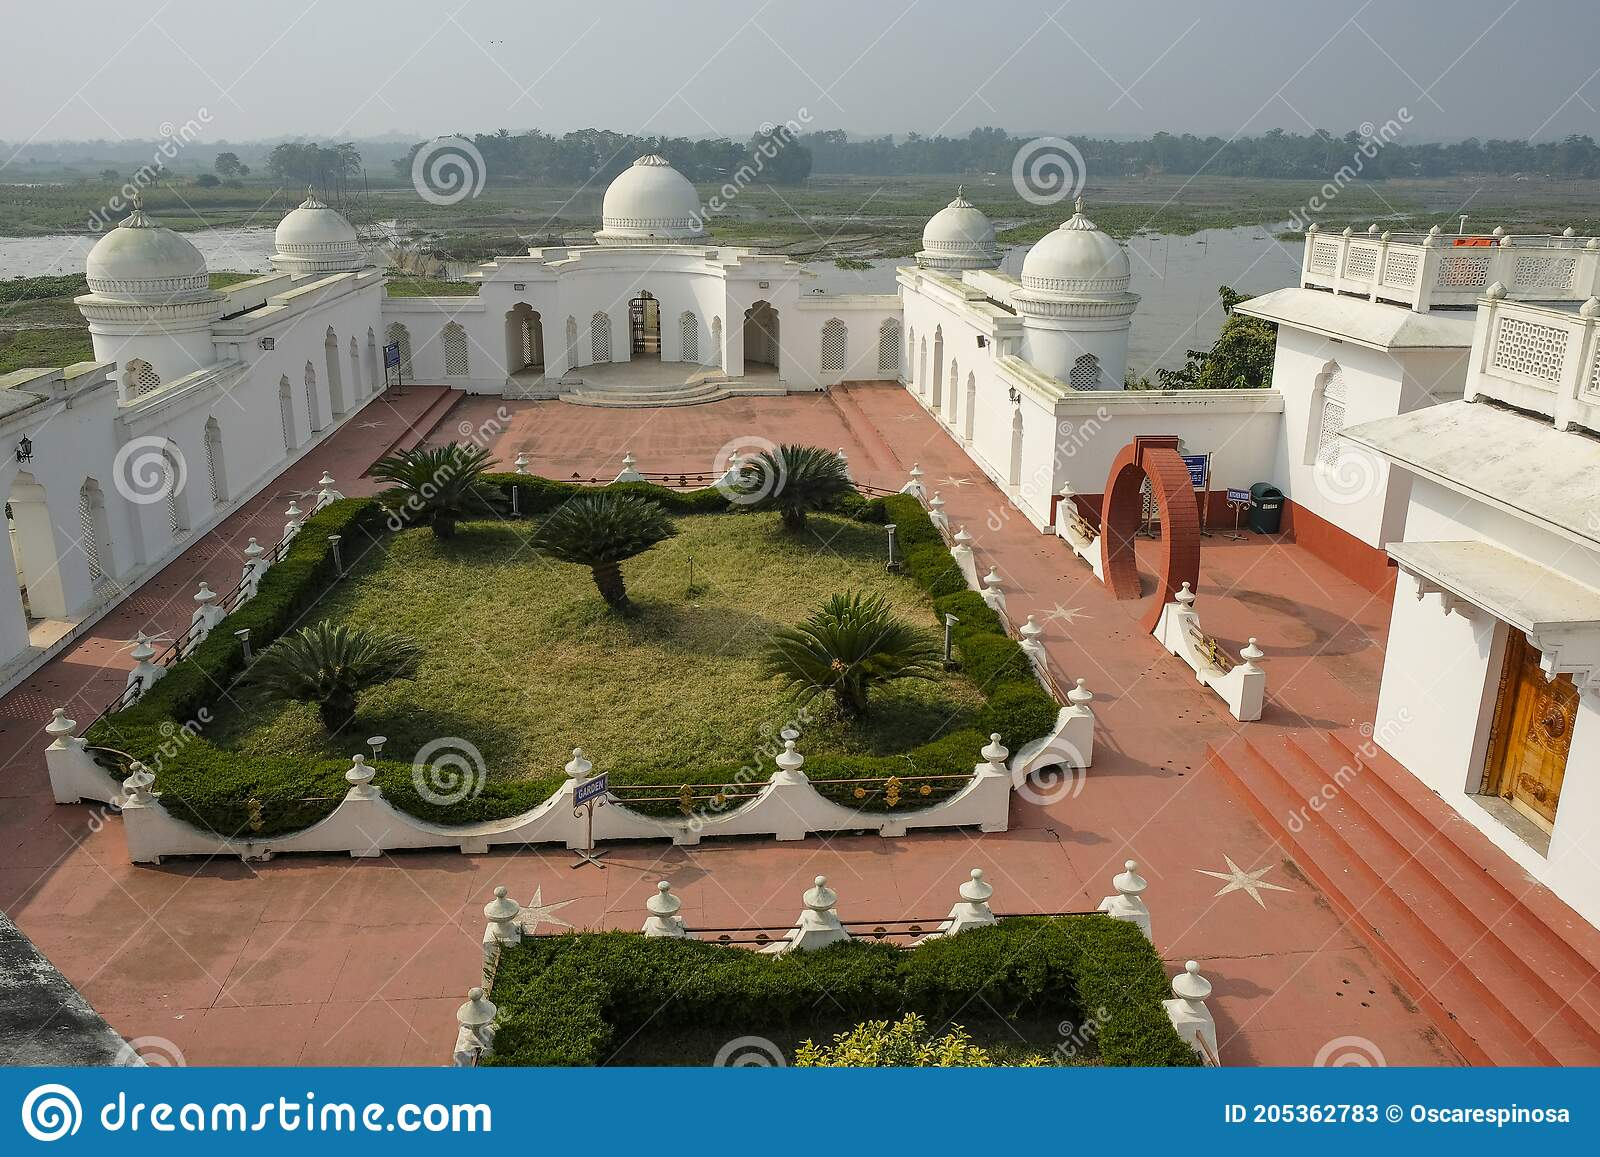 Palace Agartala Photos Free Royalty Free Stock Photos From Dreamstime